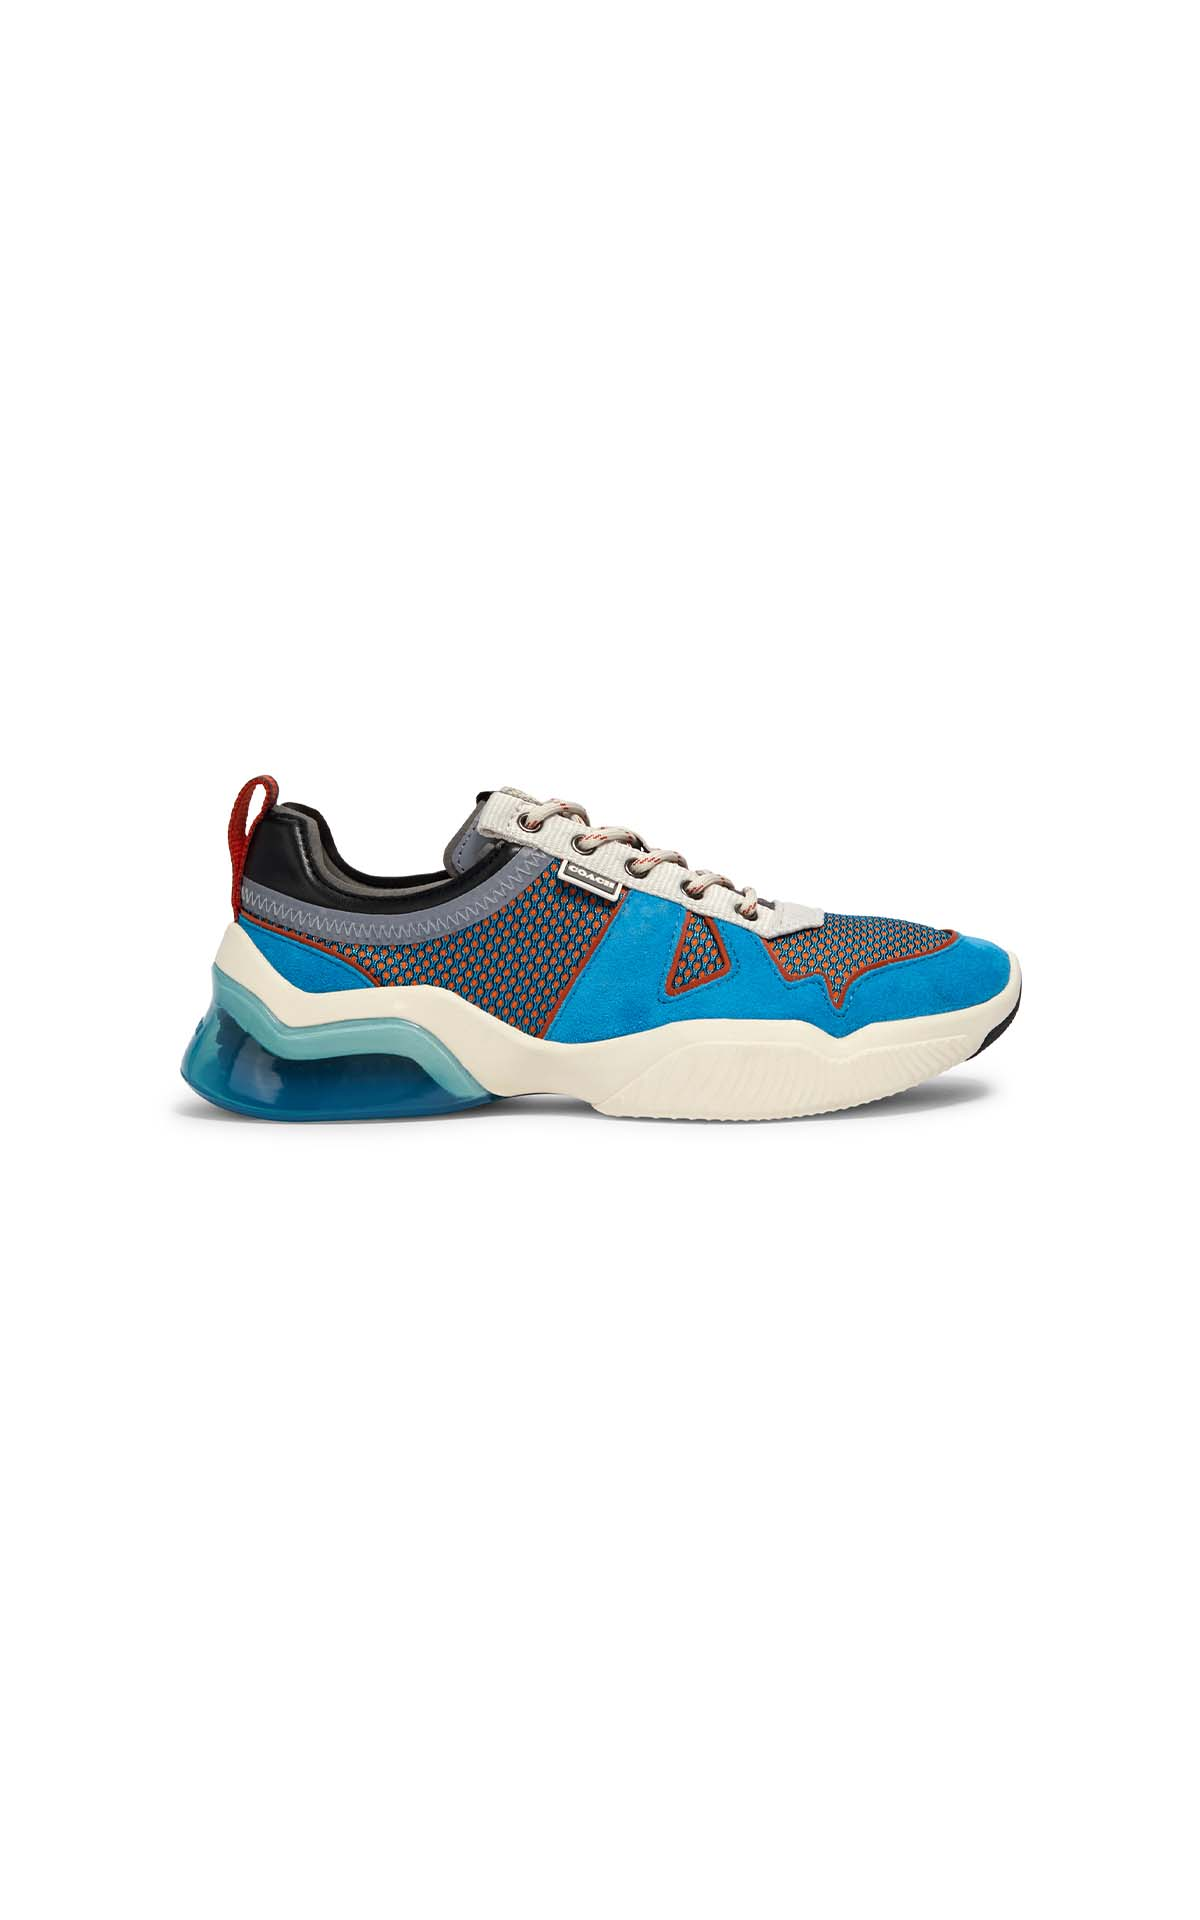 Coach CitySole mesh runner in blue jay at The Bicester Village Shopping Collection